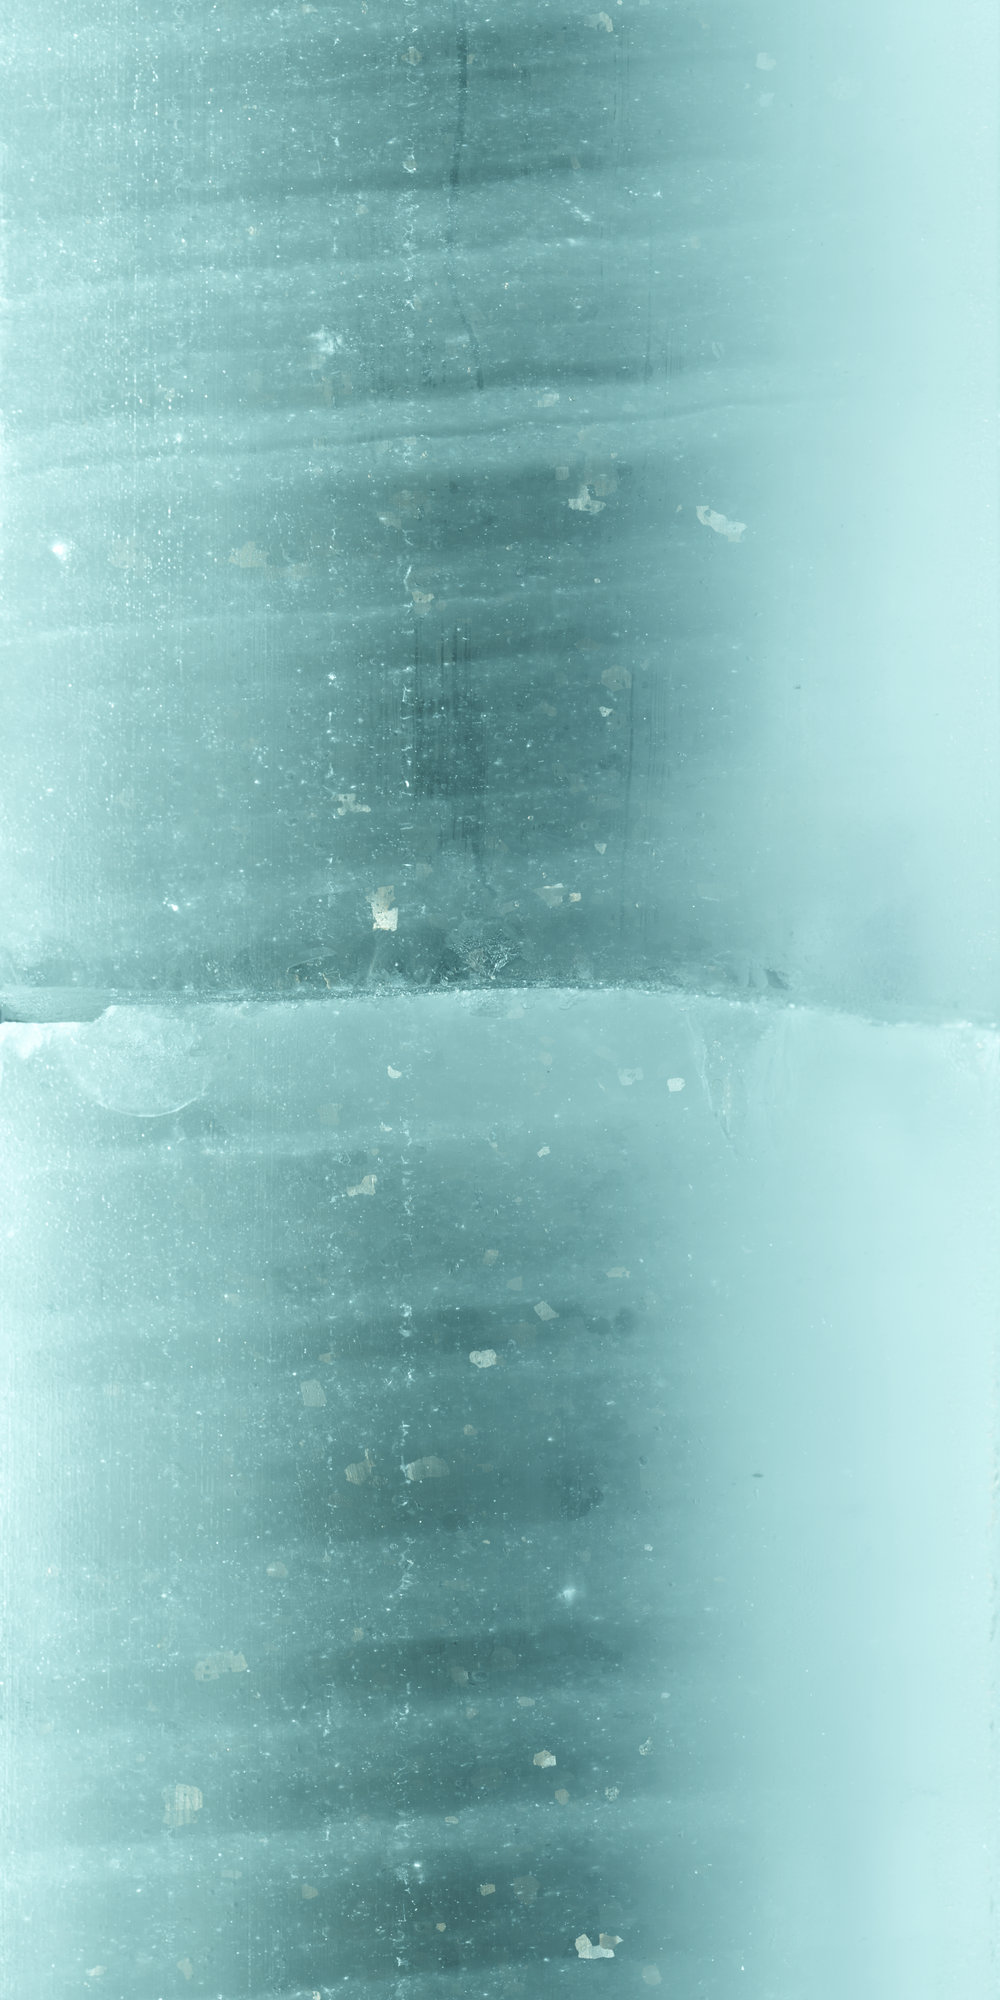 Section of an ice core from the Greenland Ice Sheet Project (GISP), taken from 2129m below the surface. Credit: Peggy Weil and the National Ice Core Laboratory.